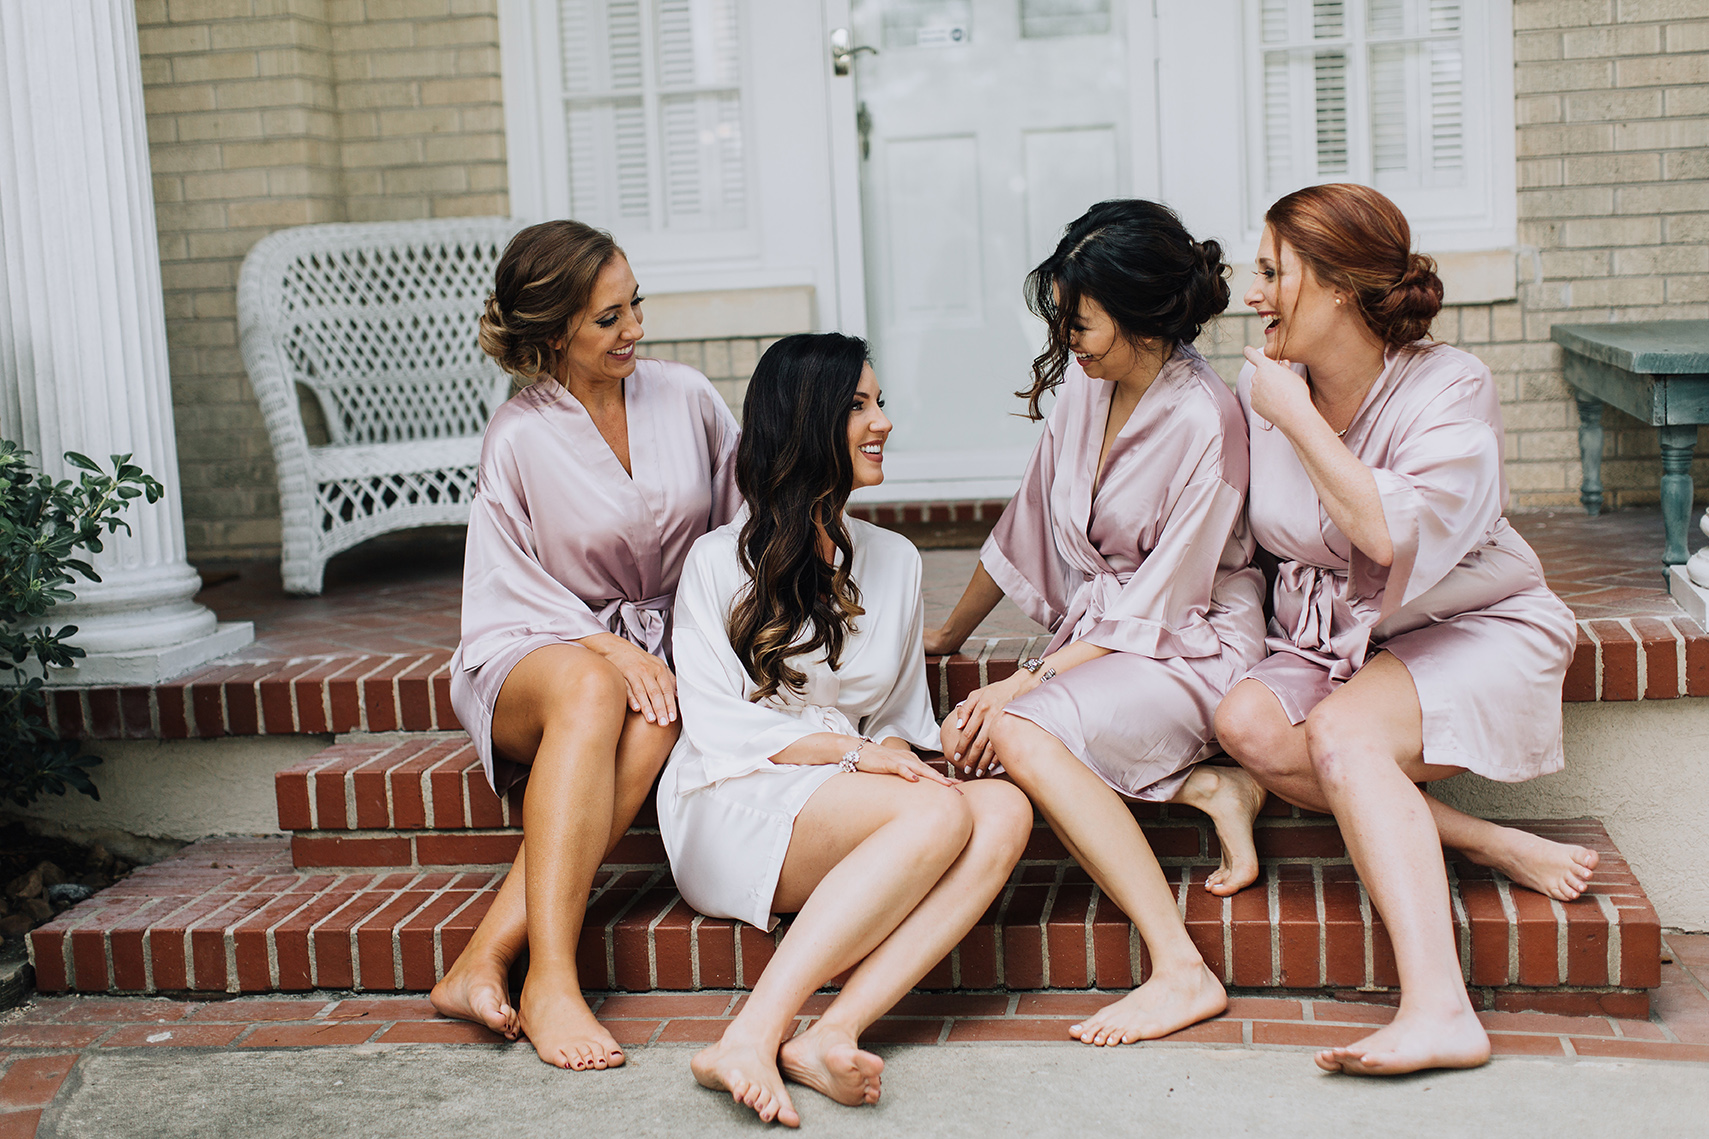 bridal party, bridesmaids, getting ready, robes, bridal, wedding photography